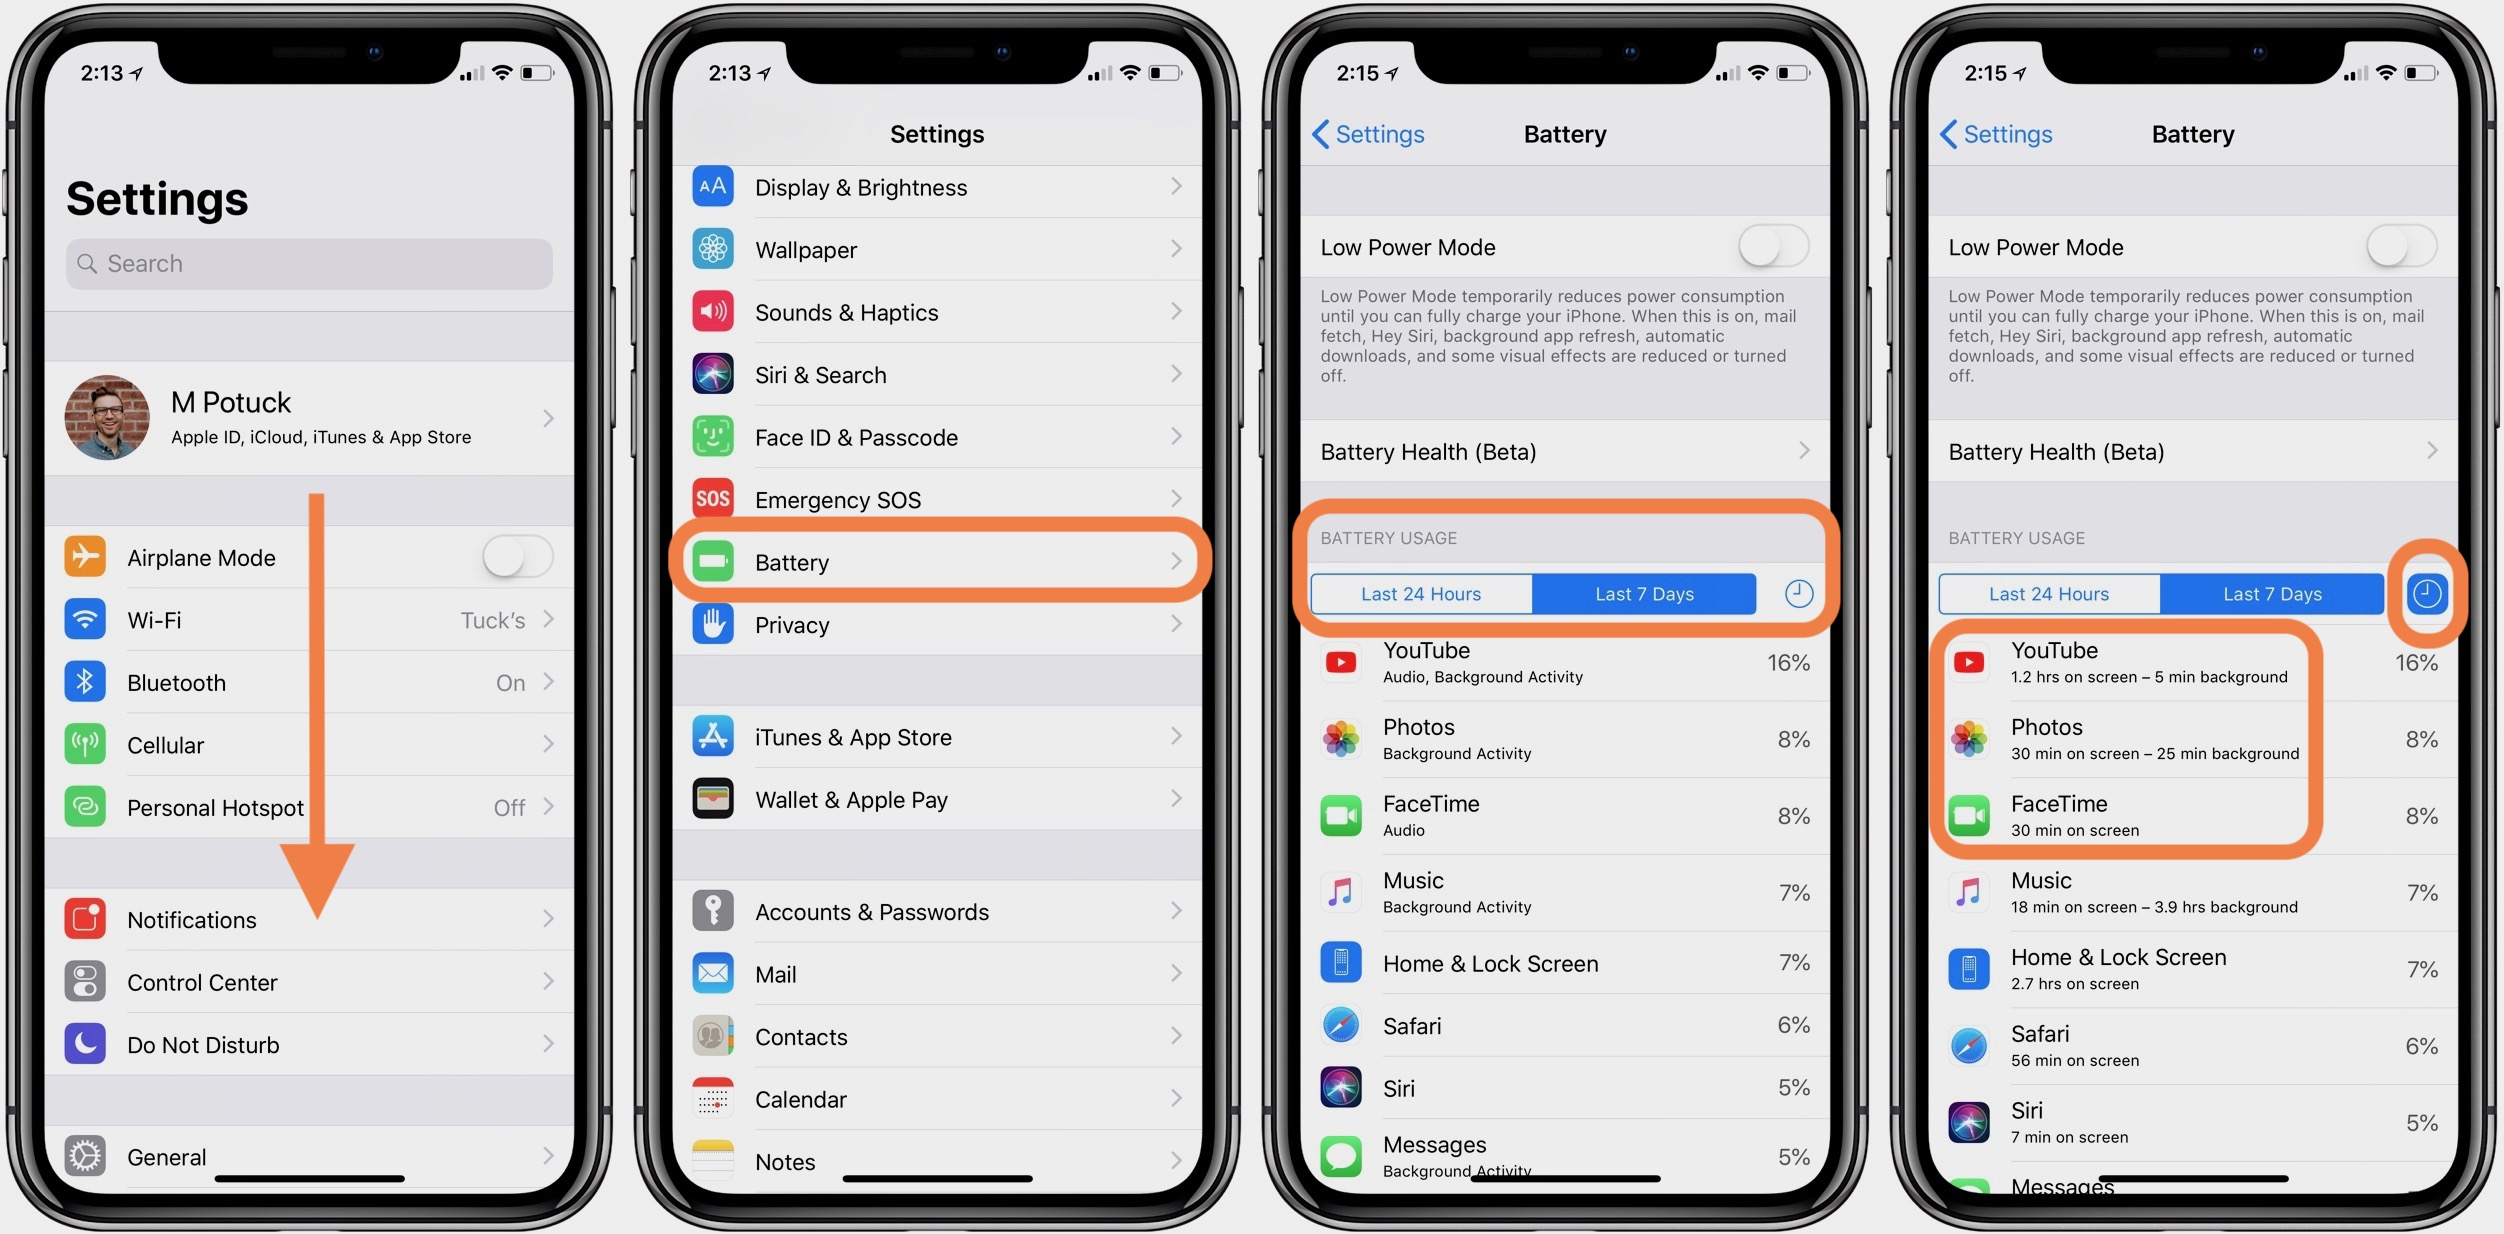 How to tell what iphone you have through settings